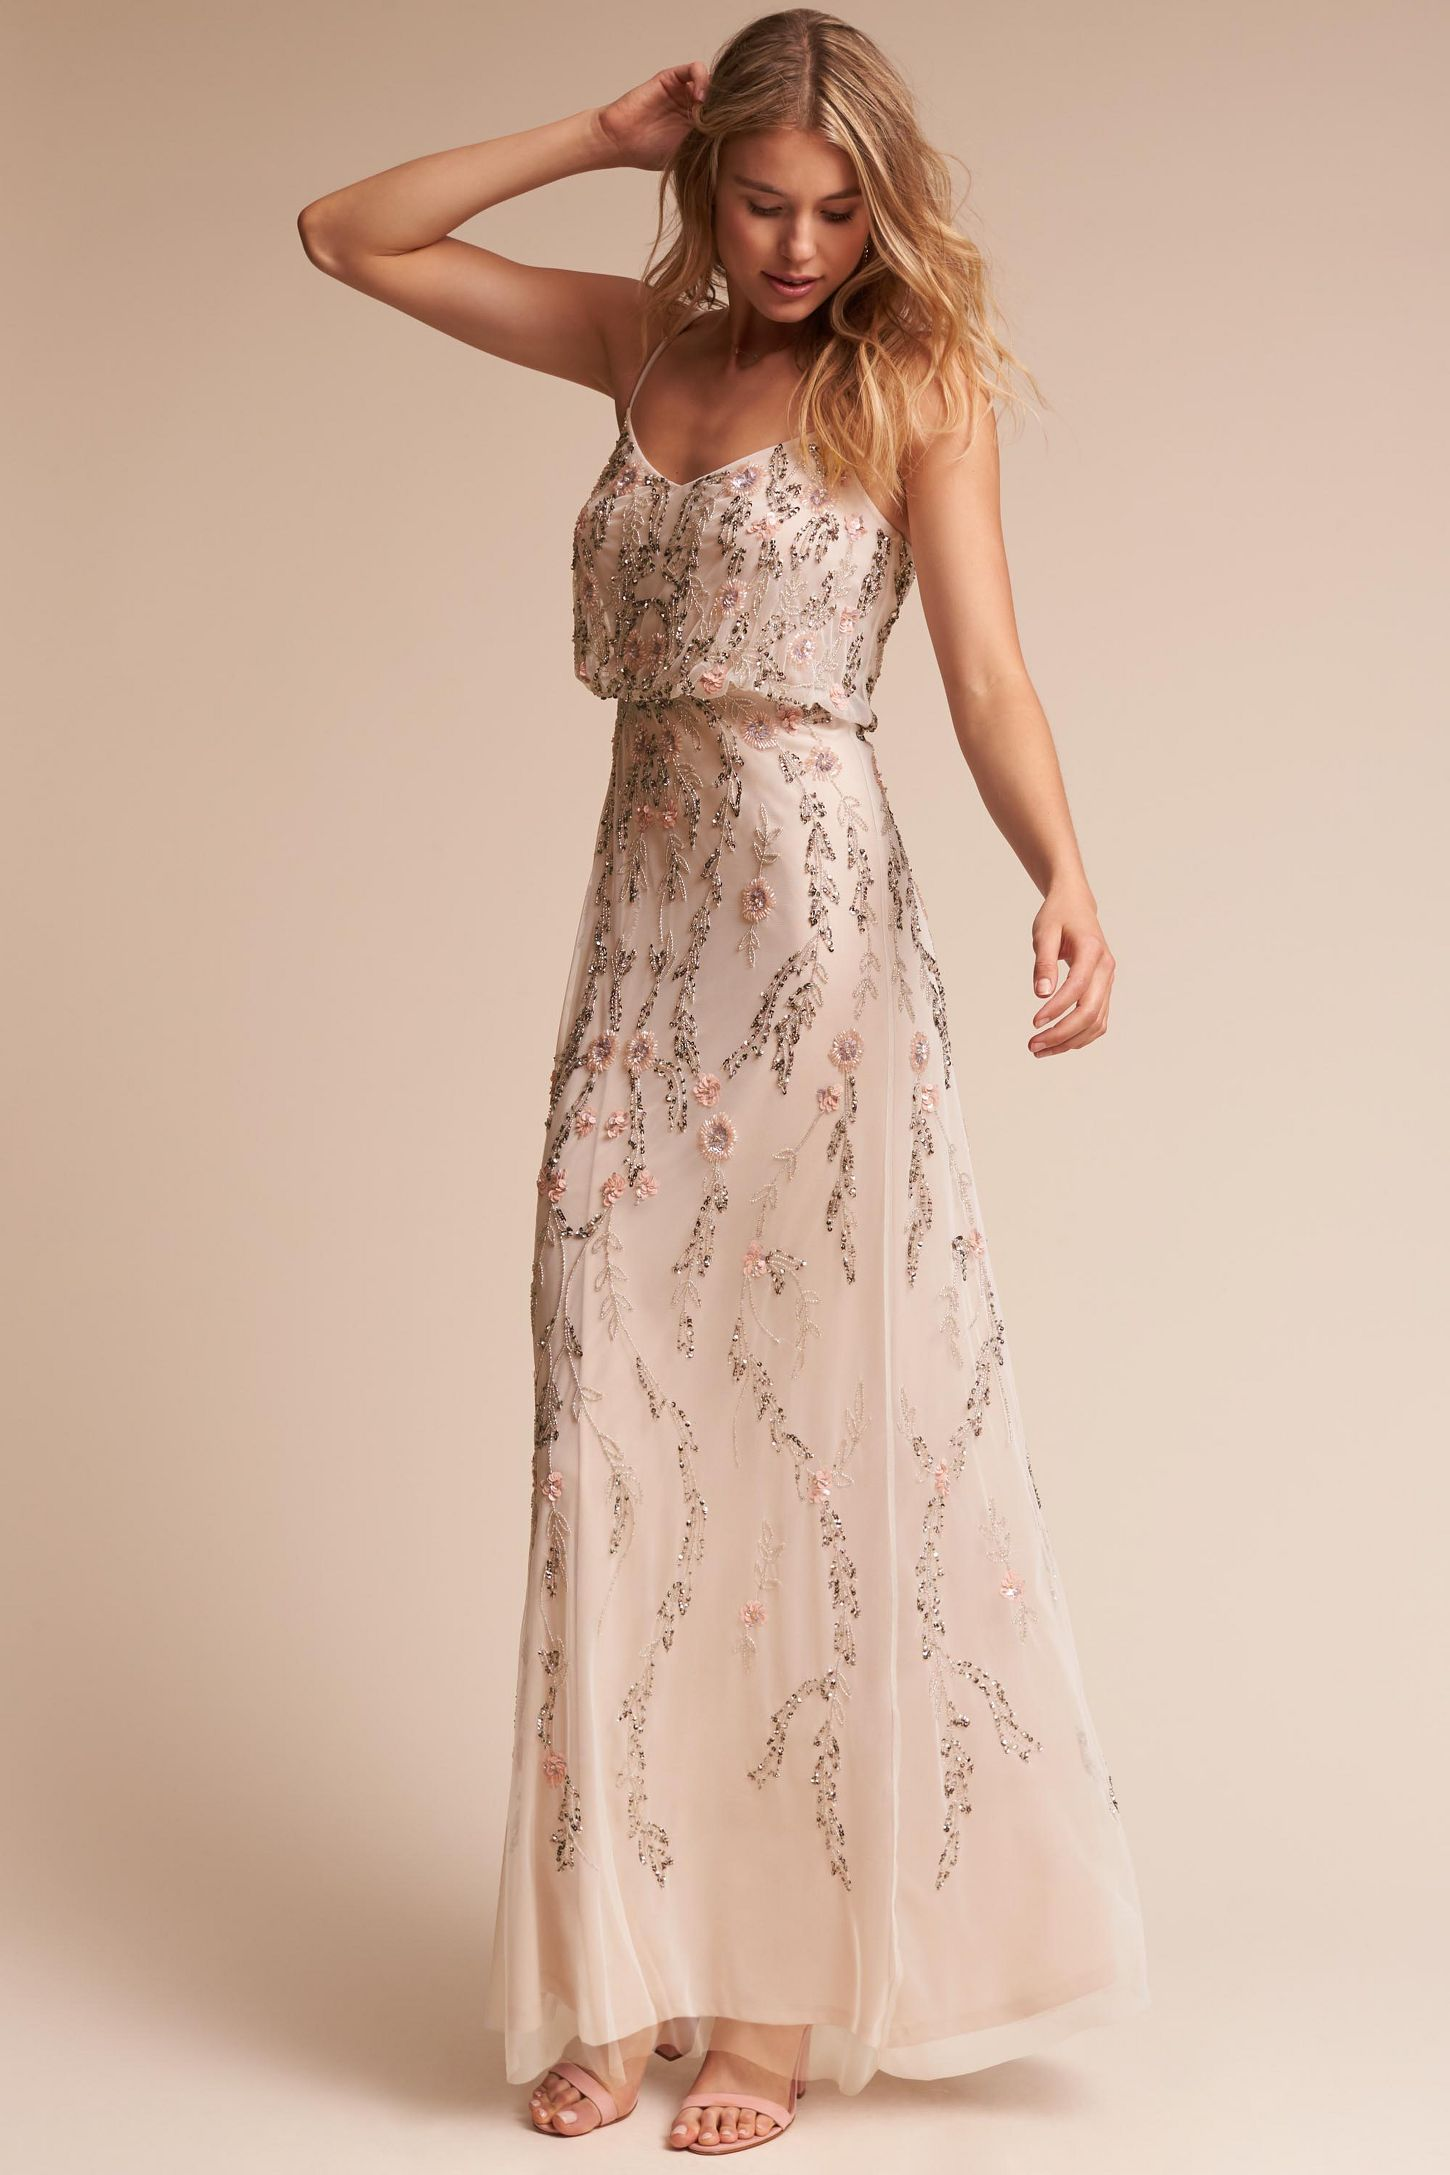 Beige wedding guest dresses anthropologie tribute dress junglespirit Choice Image